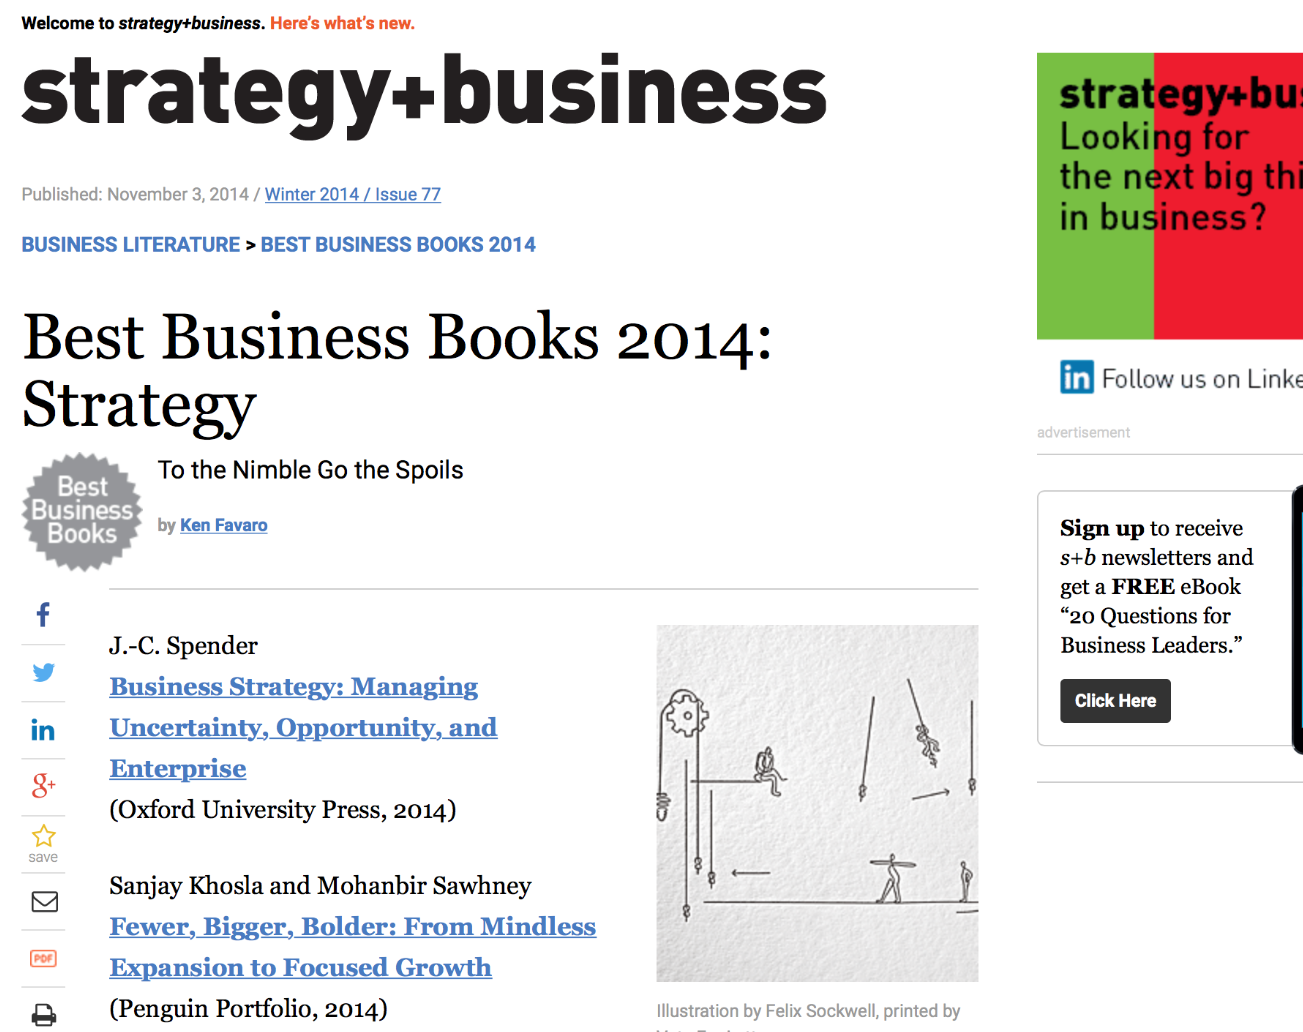 2014 Best Business Books: Strategy